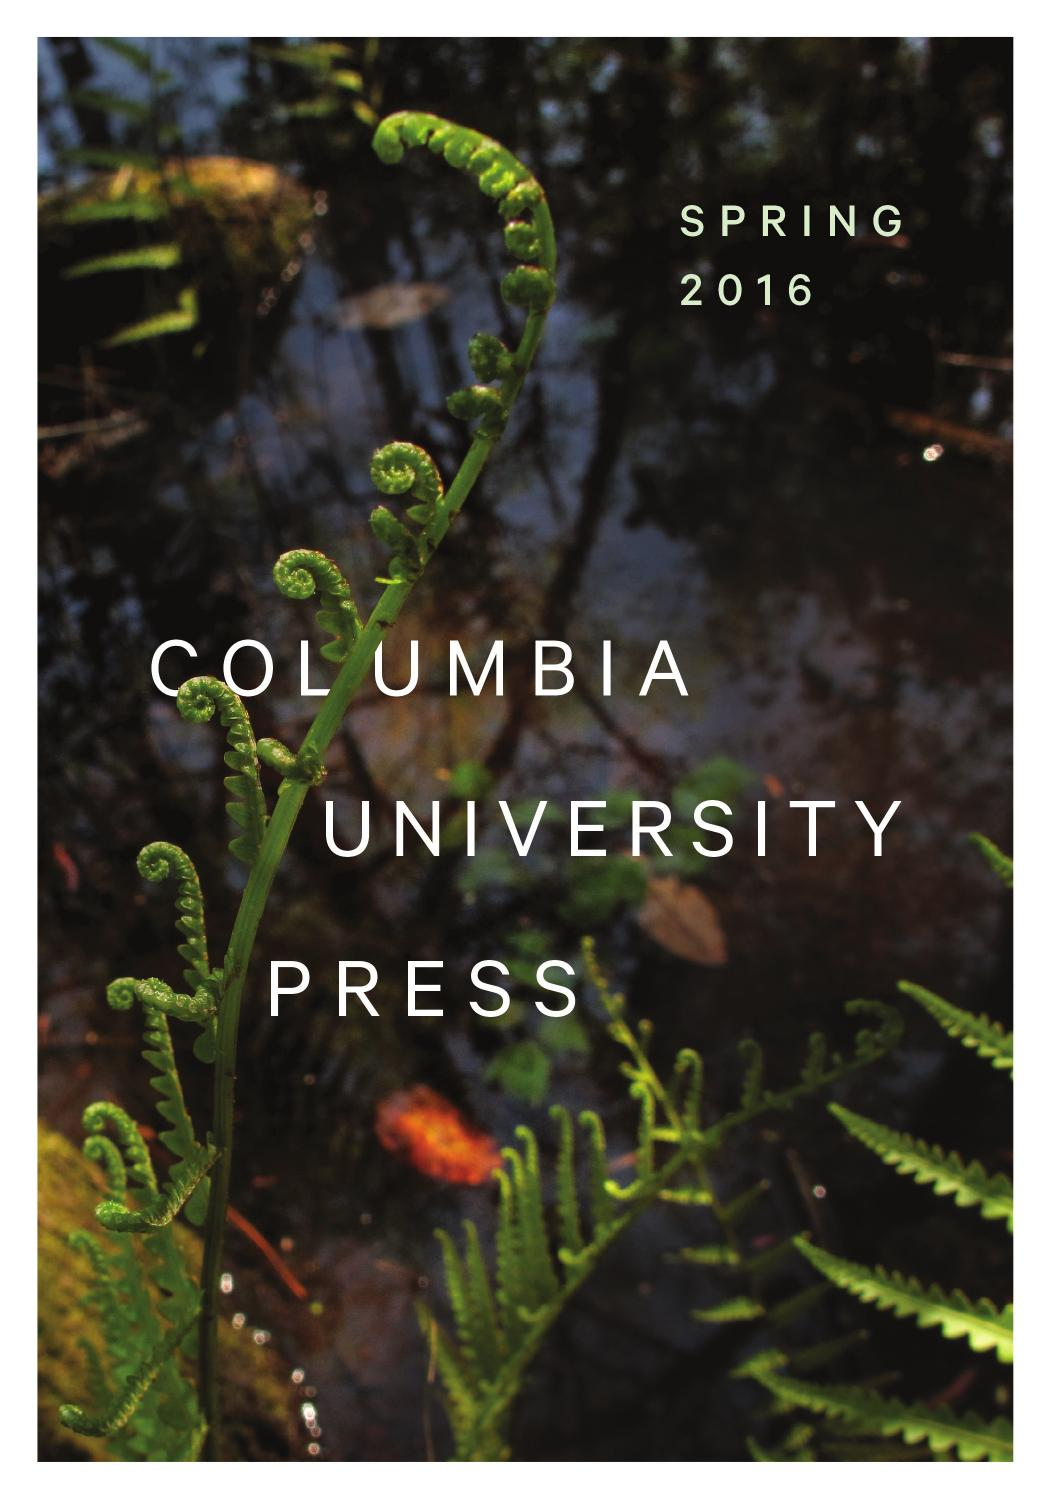 Columbia University Press Spring 2016 Catalog By Columbia University Press   Issuu